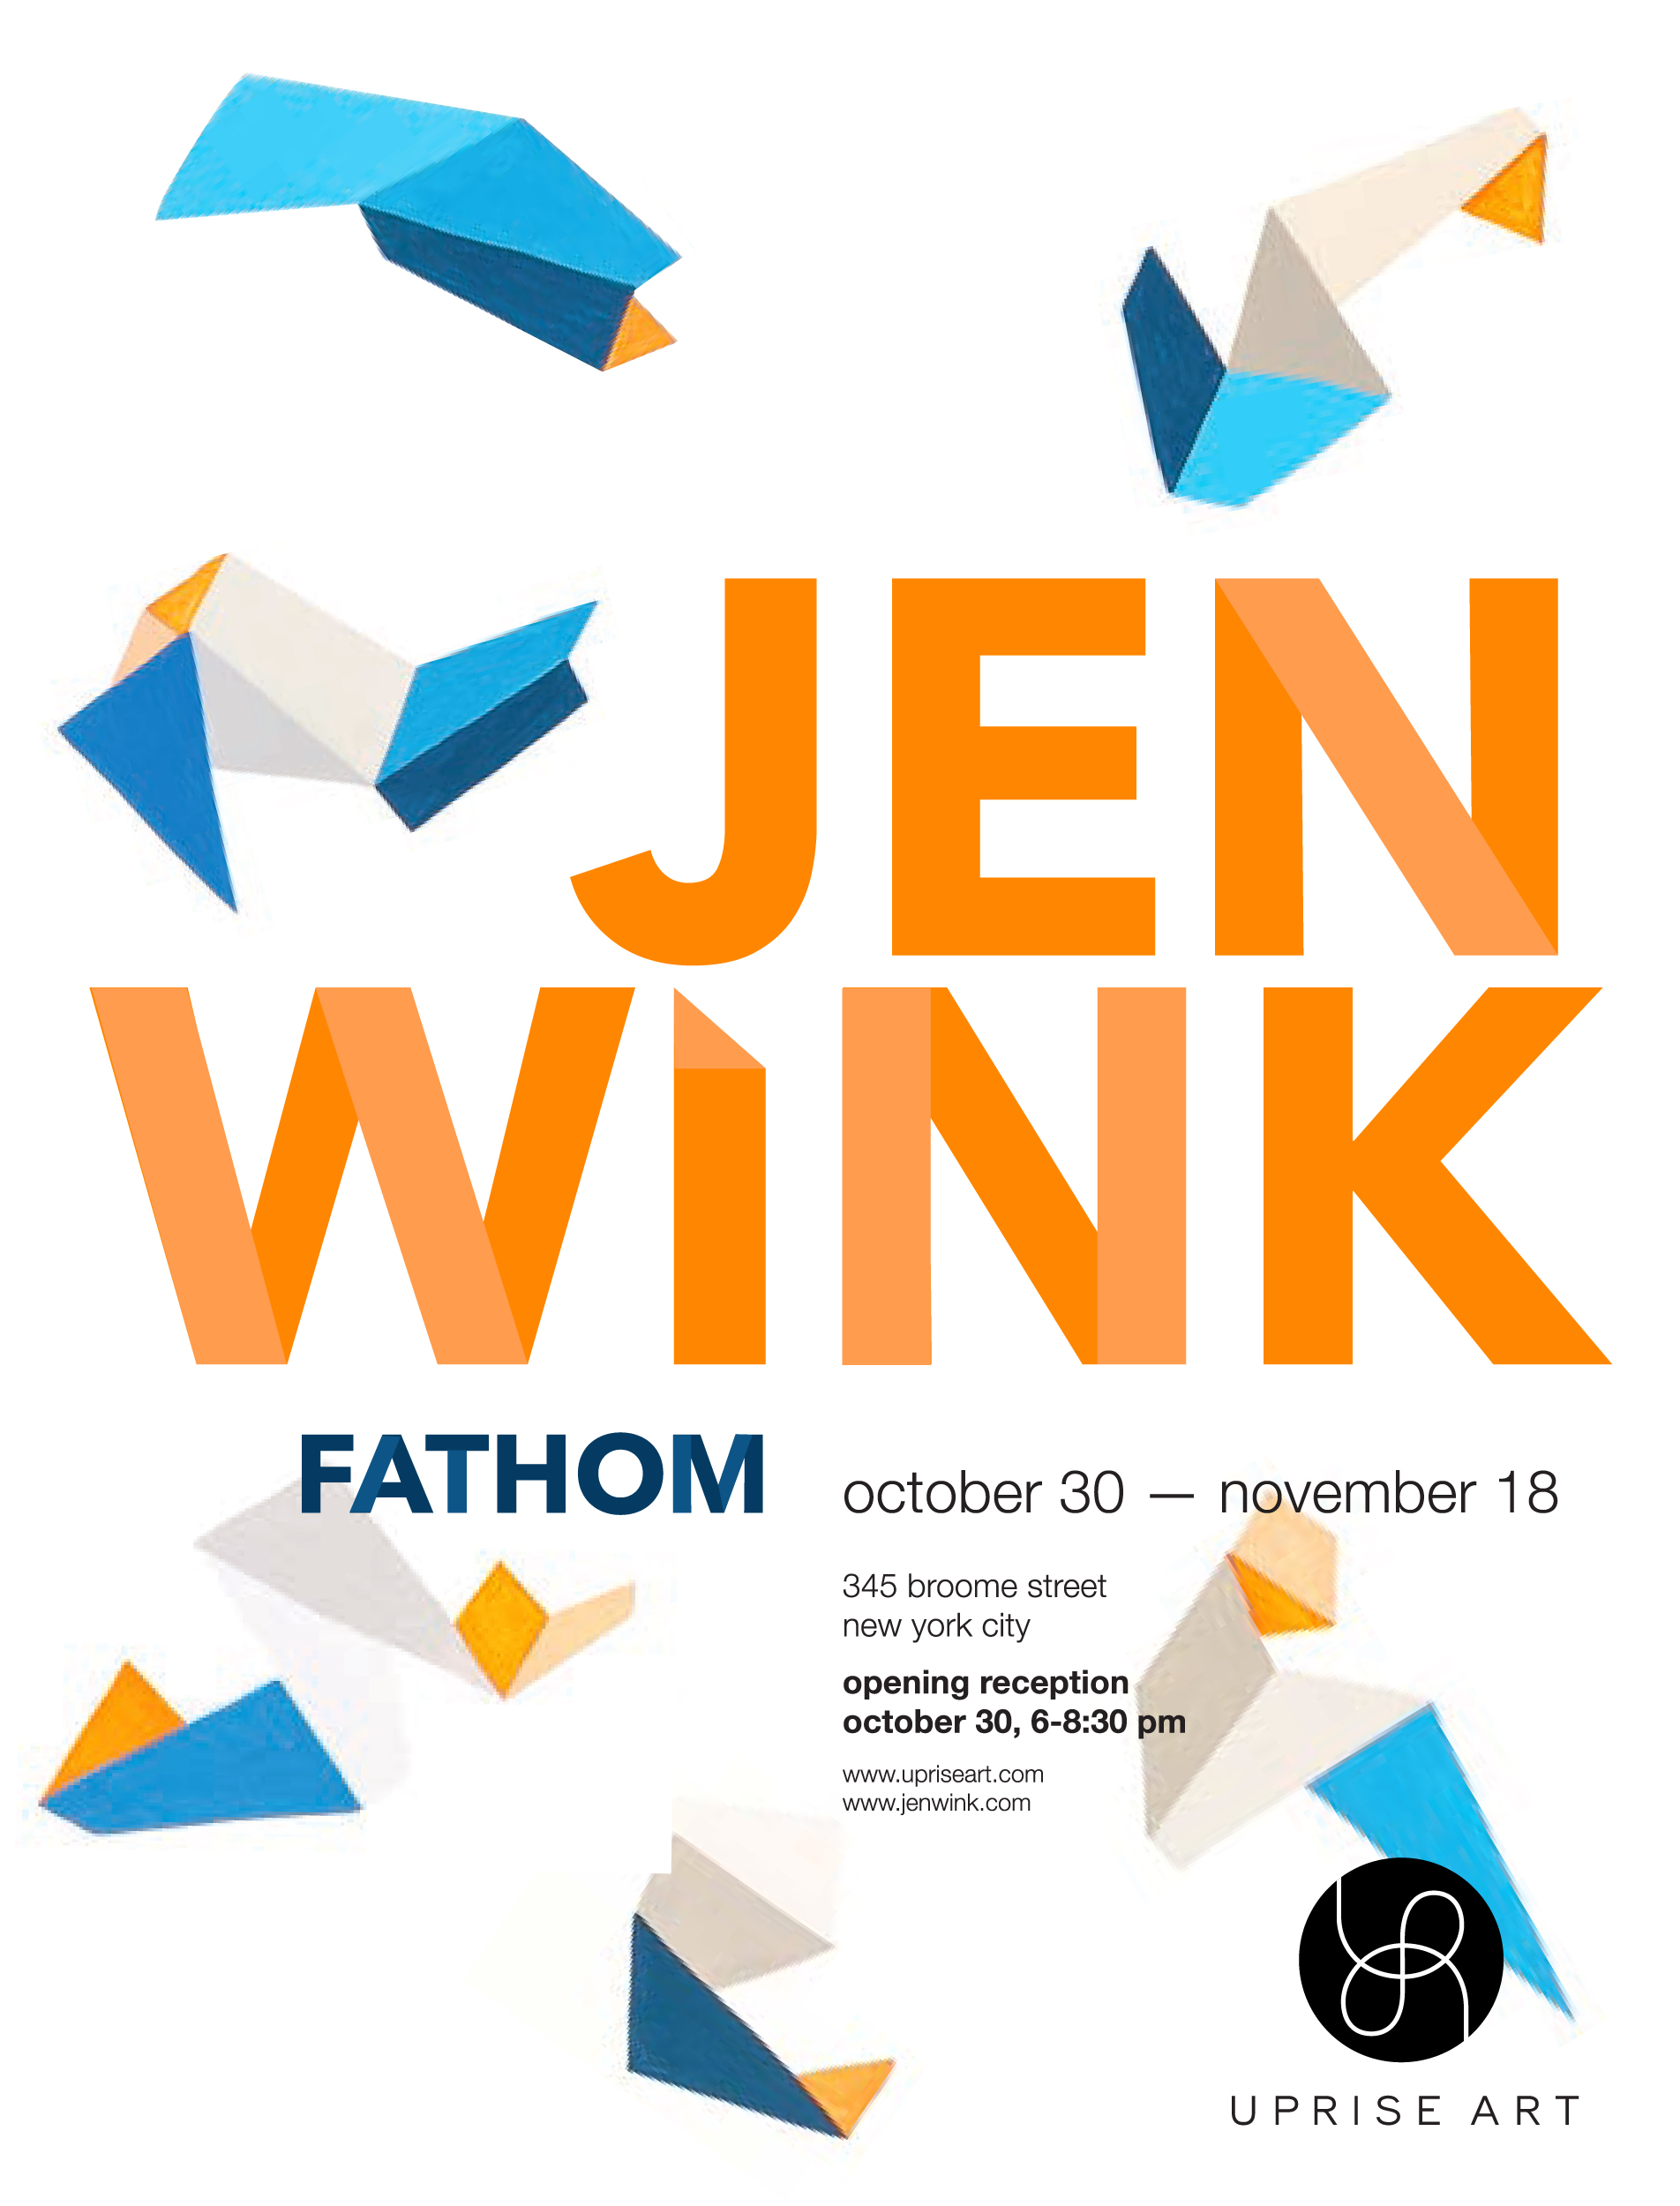 It's almost here! My solo show with Uprise, called Fathom,  opens at the end of this month (Thursday, October 30th) and will remain up through November 18th. Mark your calendar...come by and say hello!